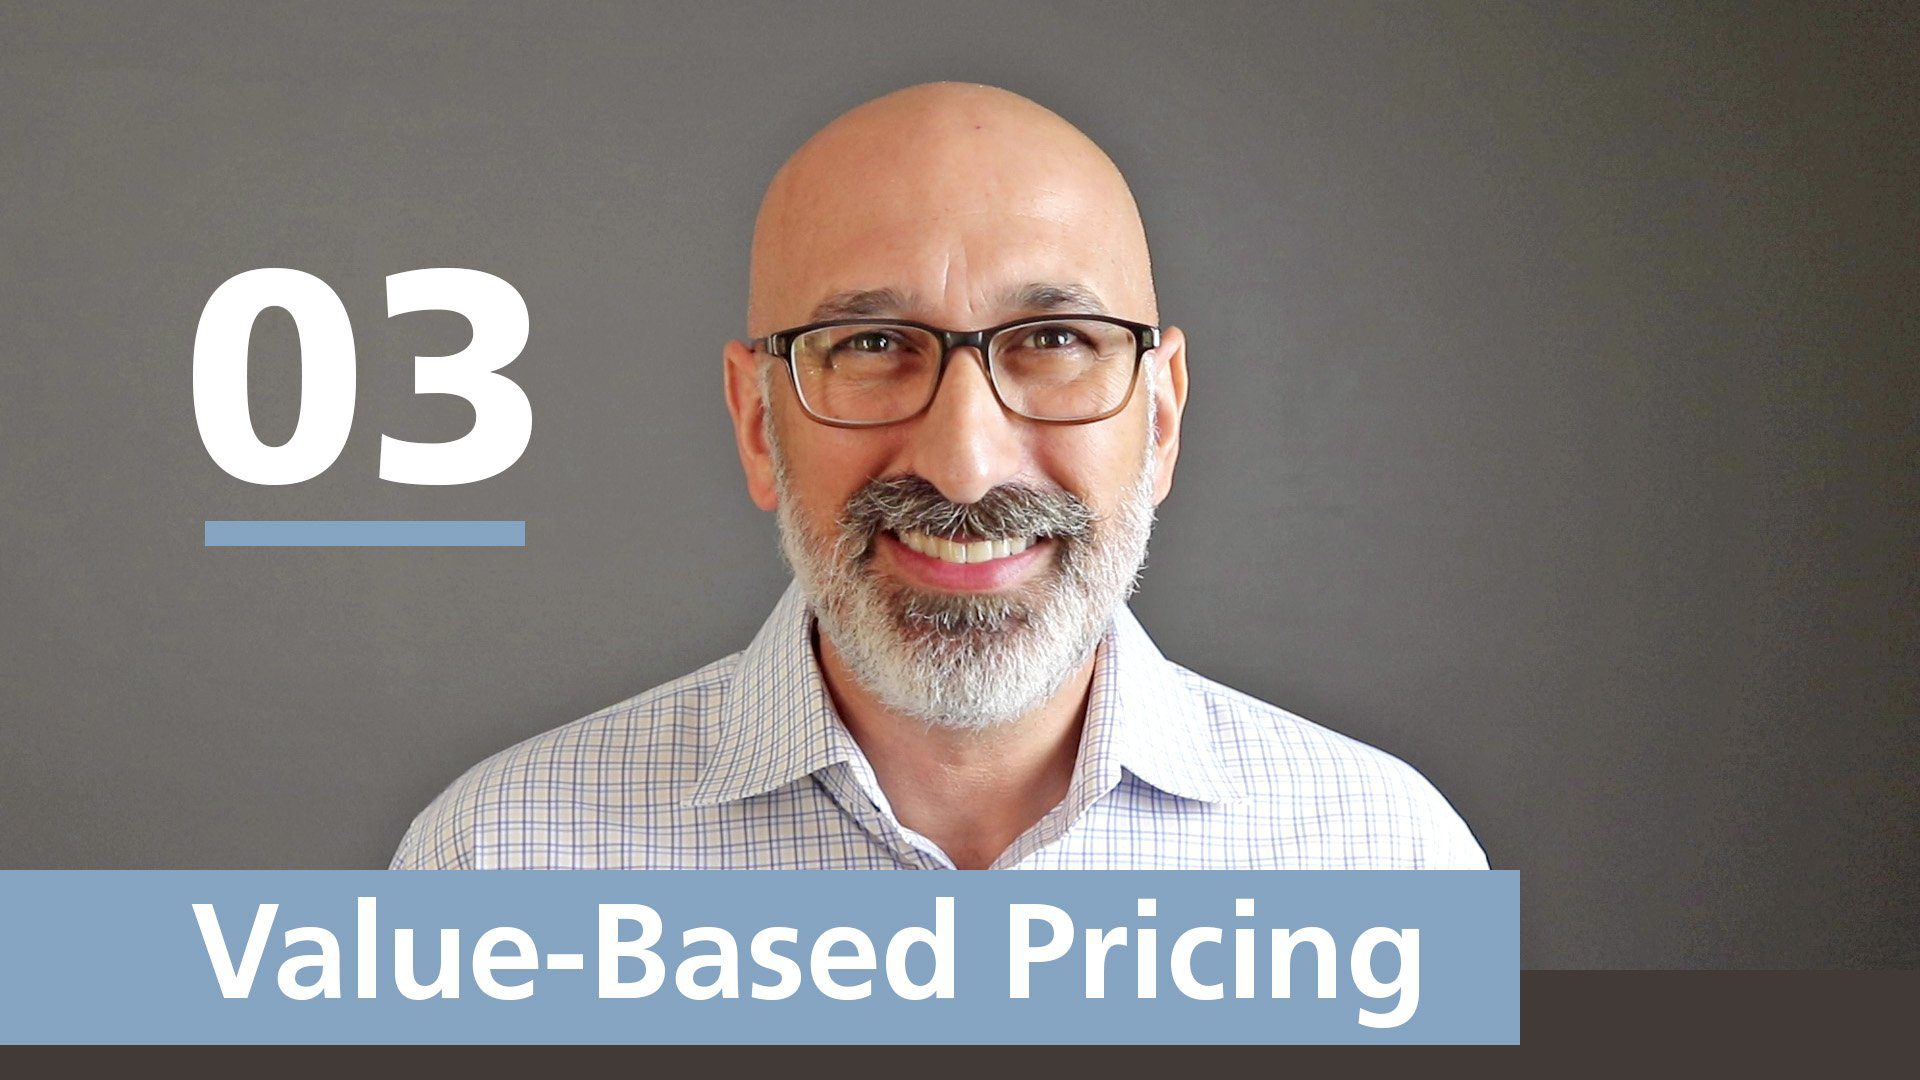 Video: Pricing Strategies, Value-Based Pricing